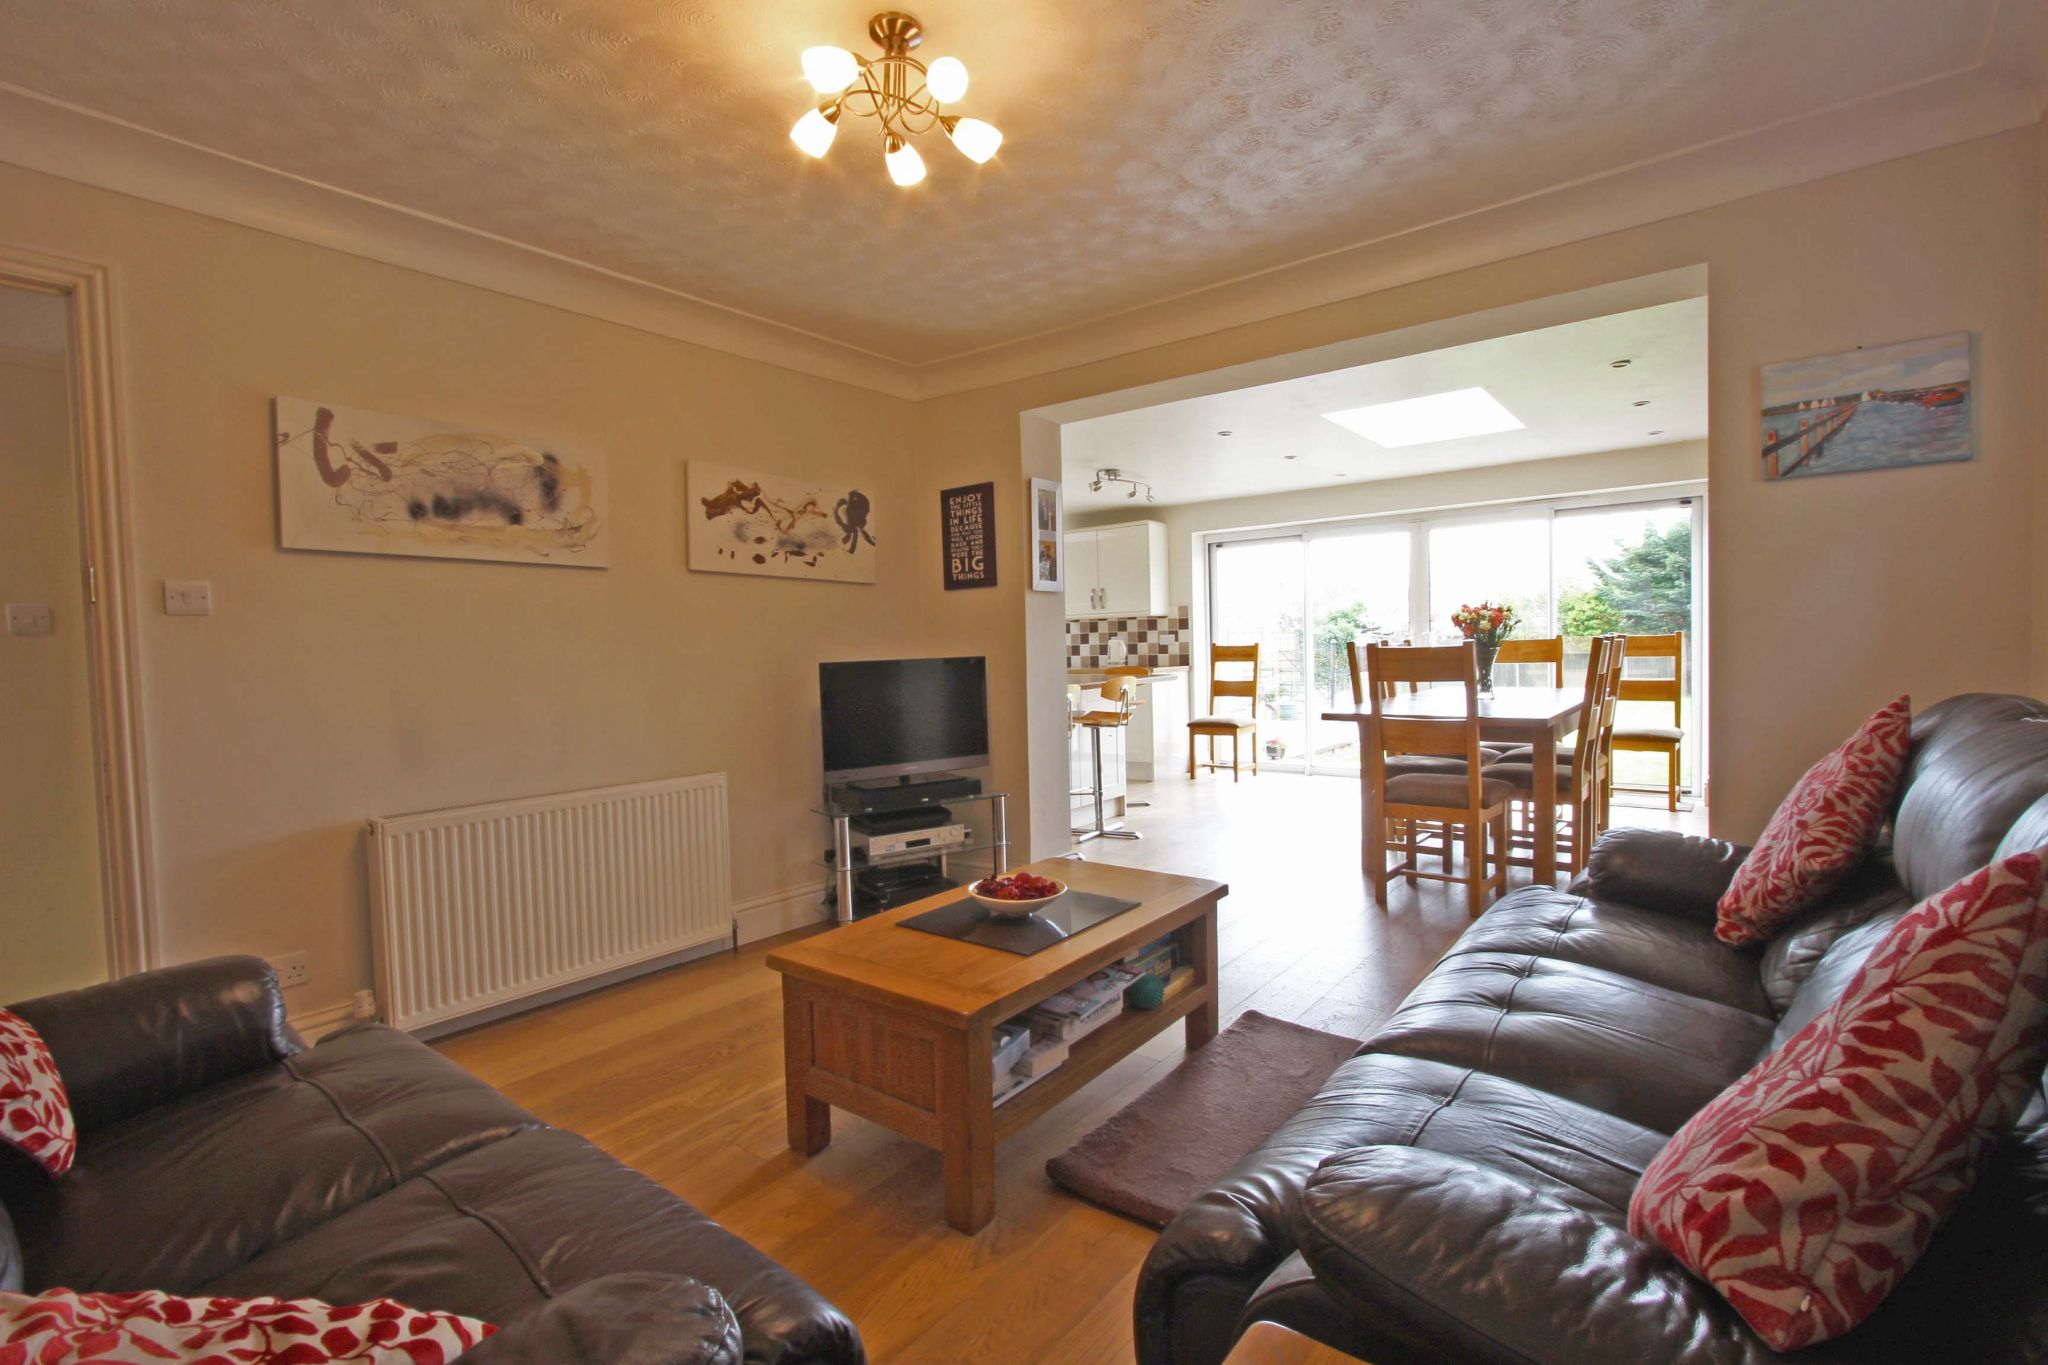 4 bedroom chalet house SSTC in Potters Bar - Photograph 4